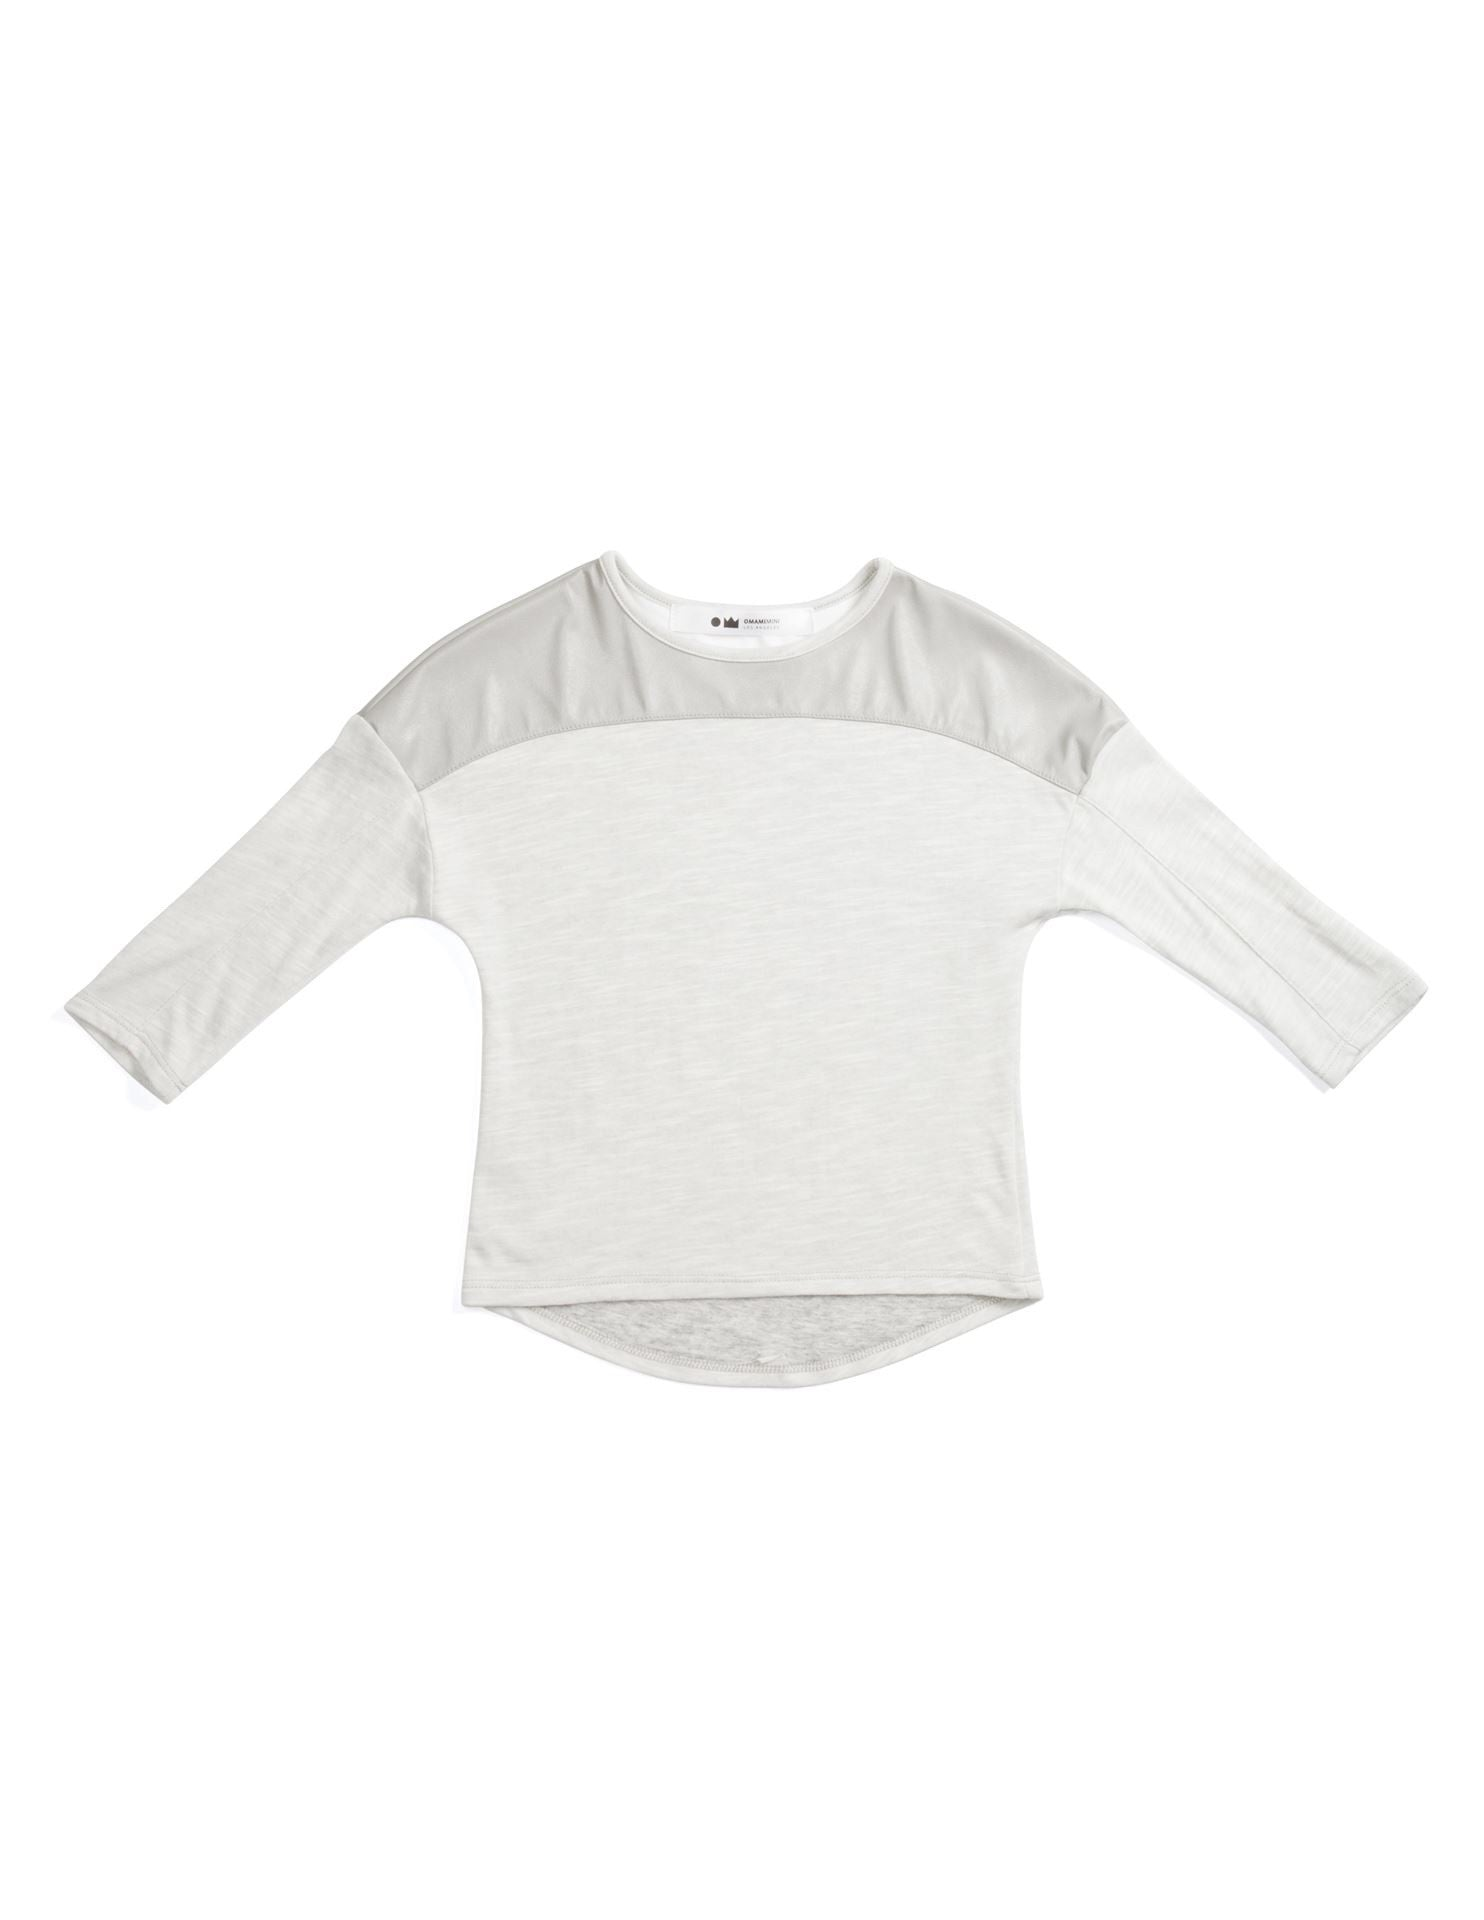 OMAMImini Grey and Cream Top with Faux Leather Detail